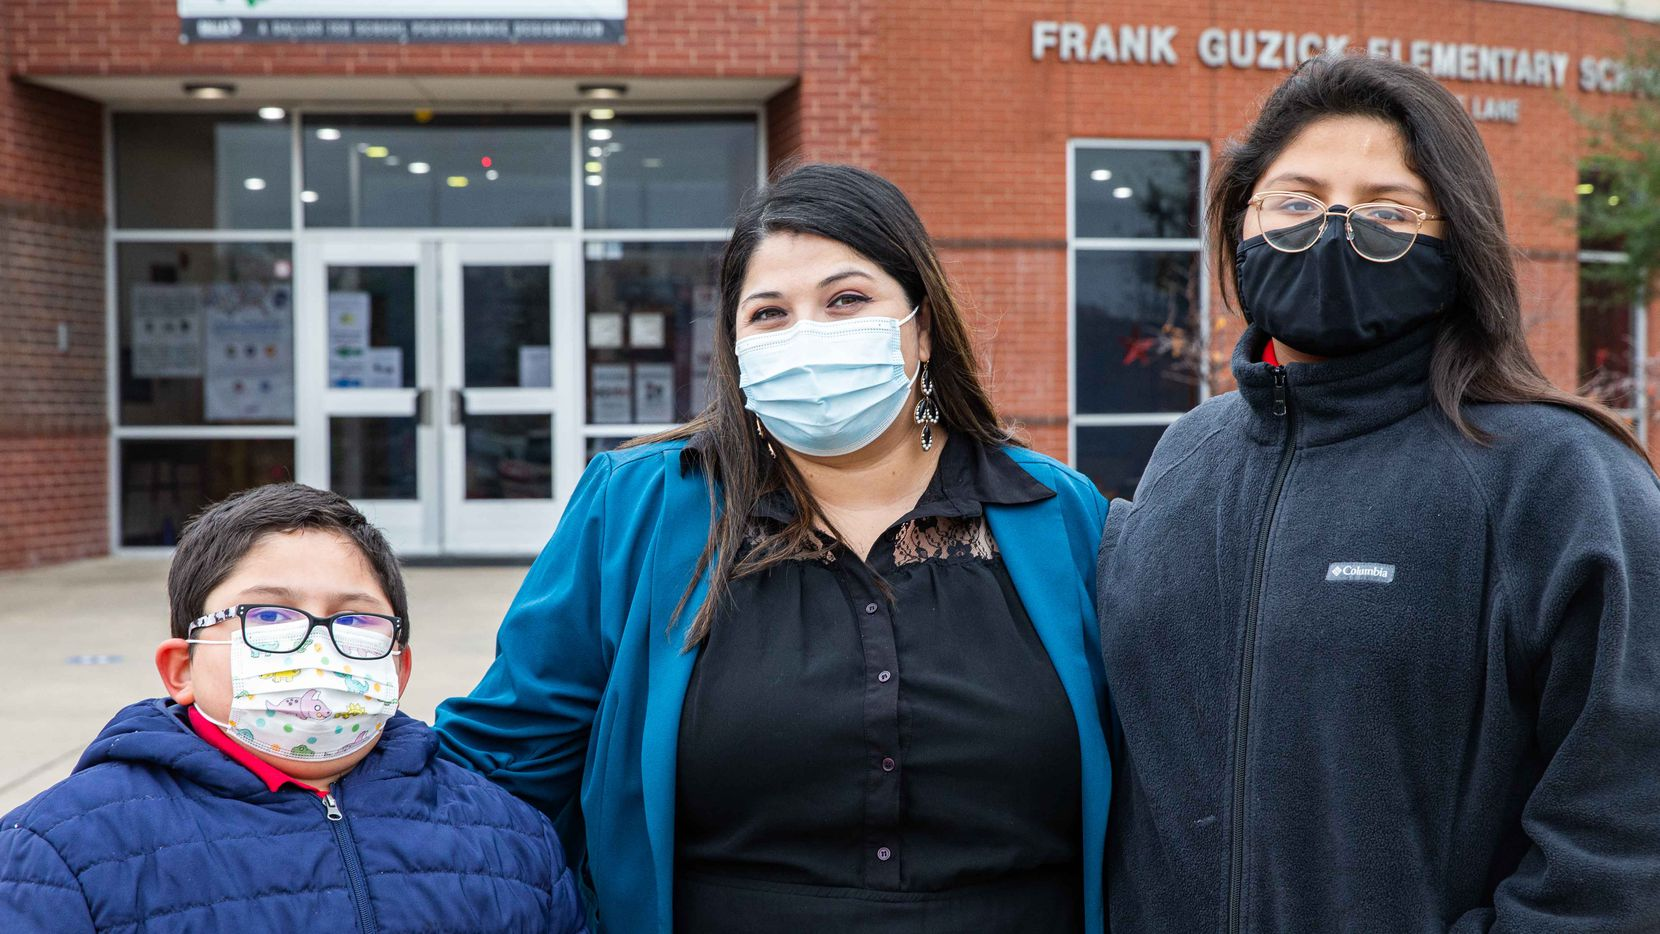 Rosa Mendoza with her two children, David Sanroman, 7, and Miah Rivera-Mendoza, 10, at Frank Guzick Elementary School in Dallas on Tuesday, Dec. 15, 2020. Mendoza has tried to help her kids make progress in math, and says they've thrived since returning to in-person school after months of learning virtually.